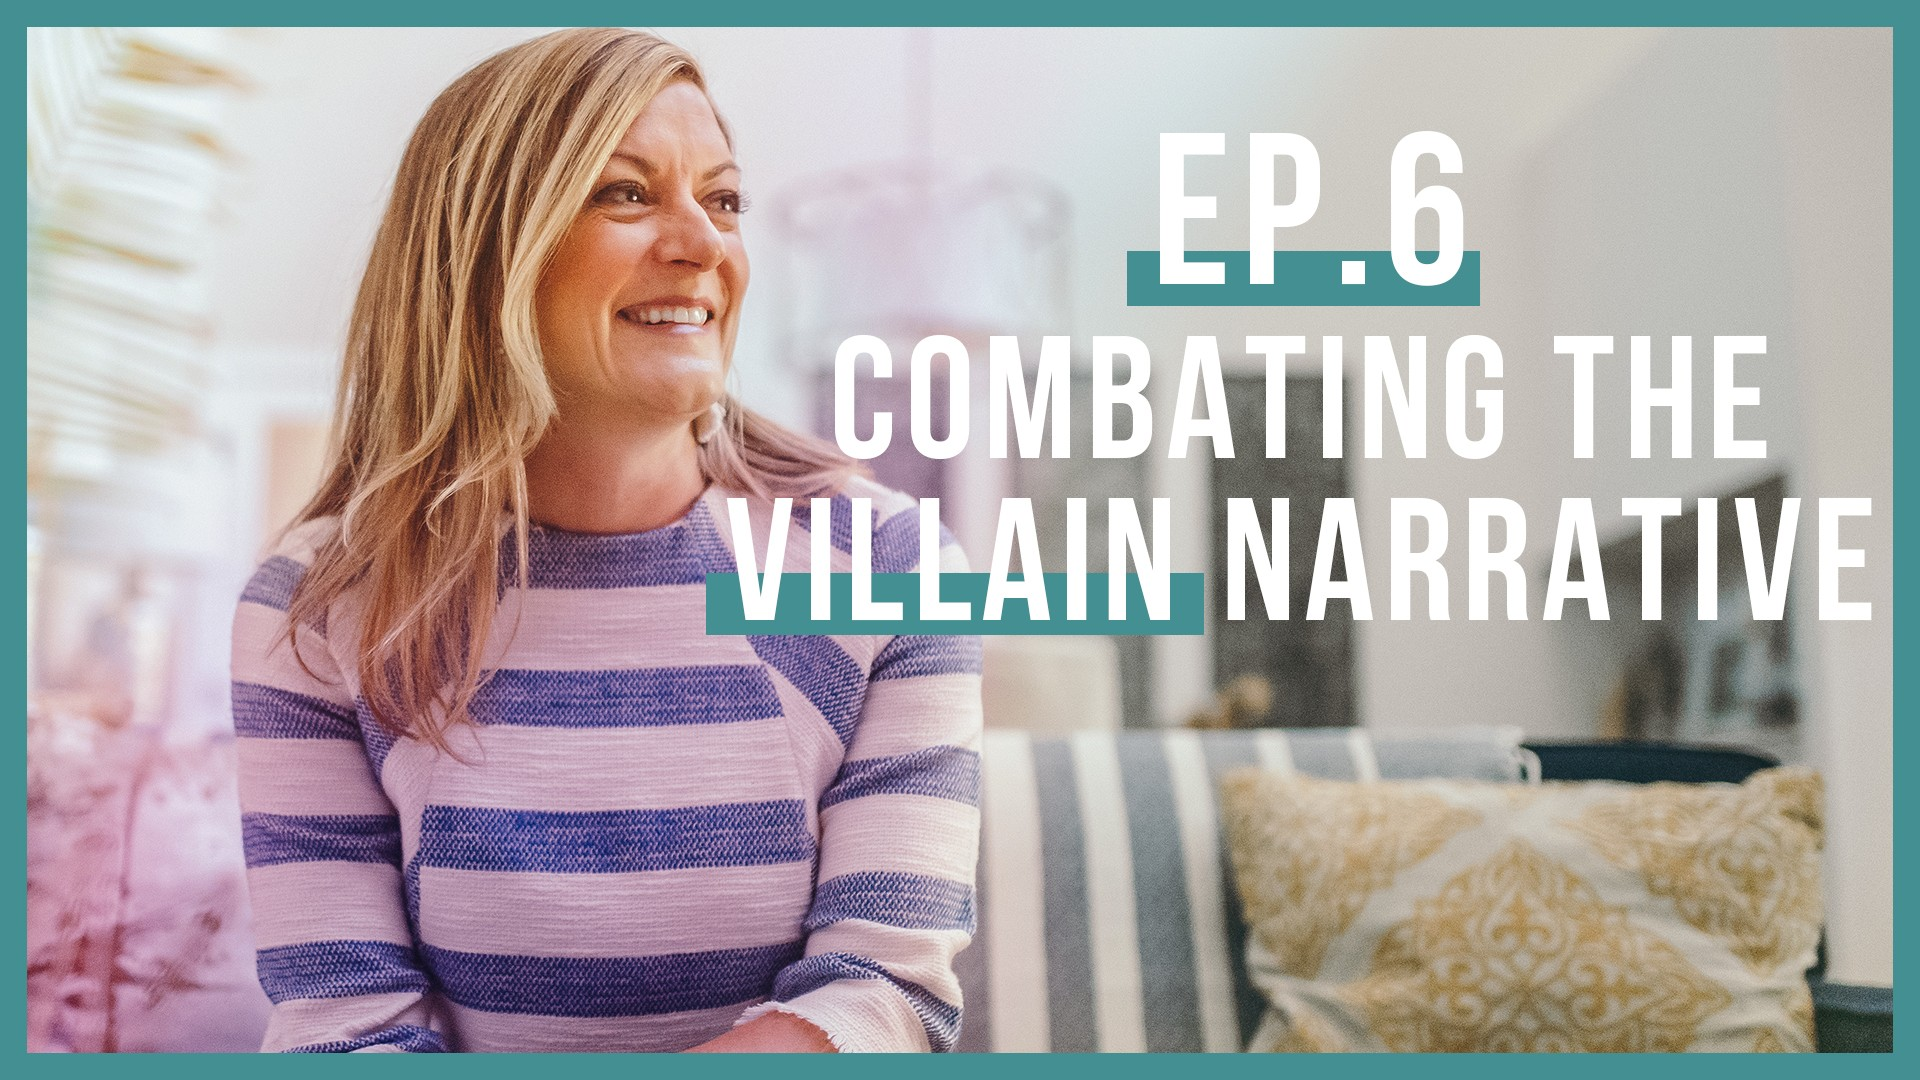 Combating the Villain Narrative (Let's Be Real, Ep. 6)